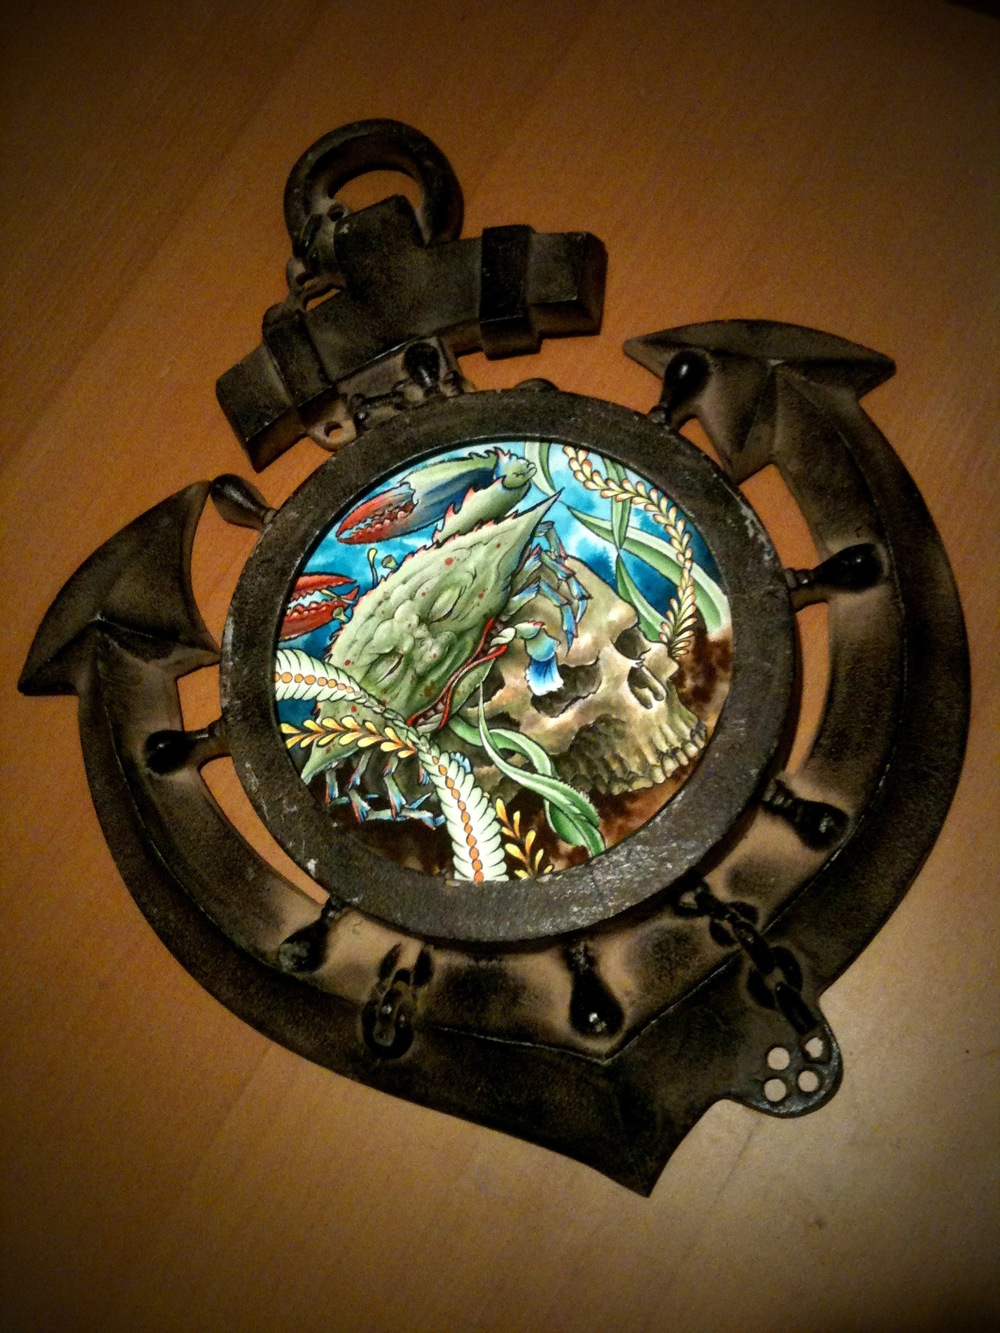 Crab and skull in anchor frame.